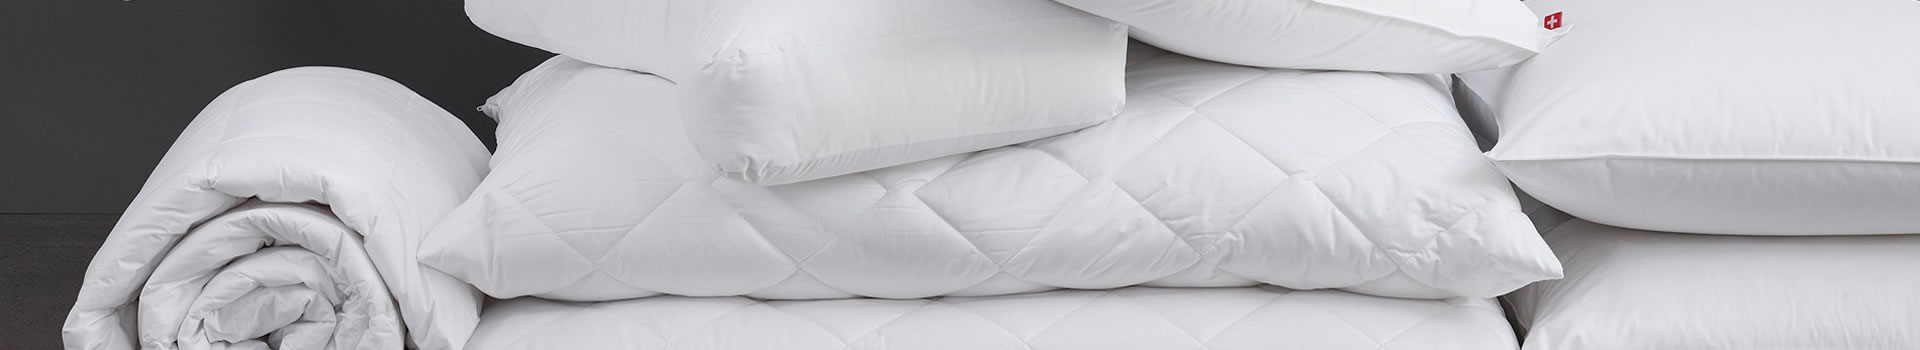 Duvet and pillow laundry cleaning service in High Wycombe